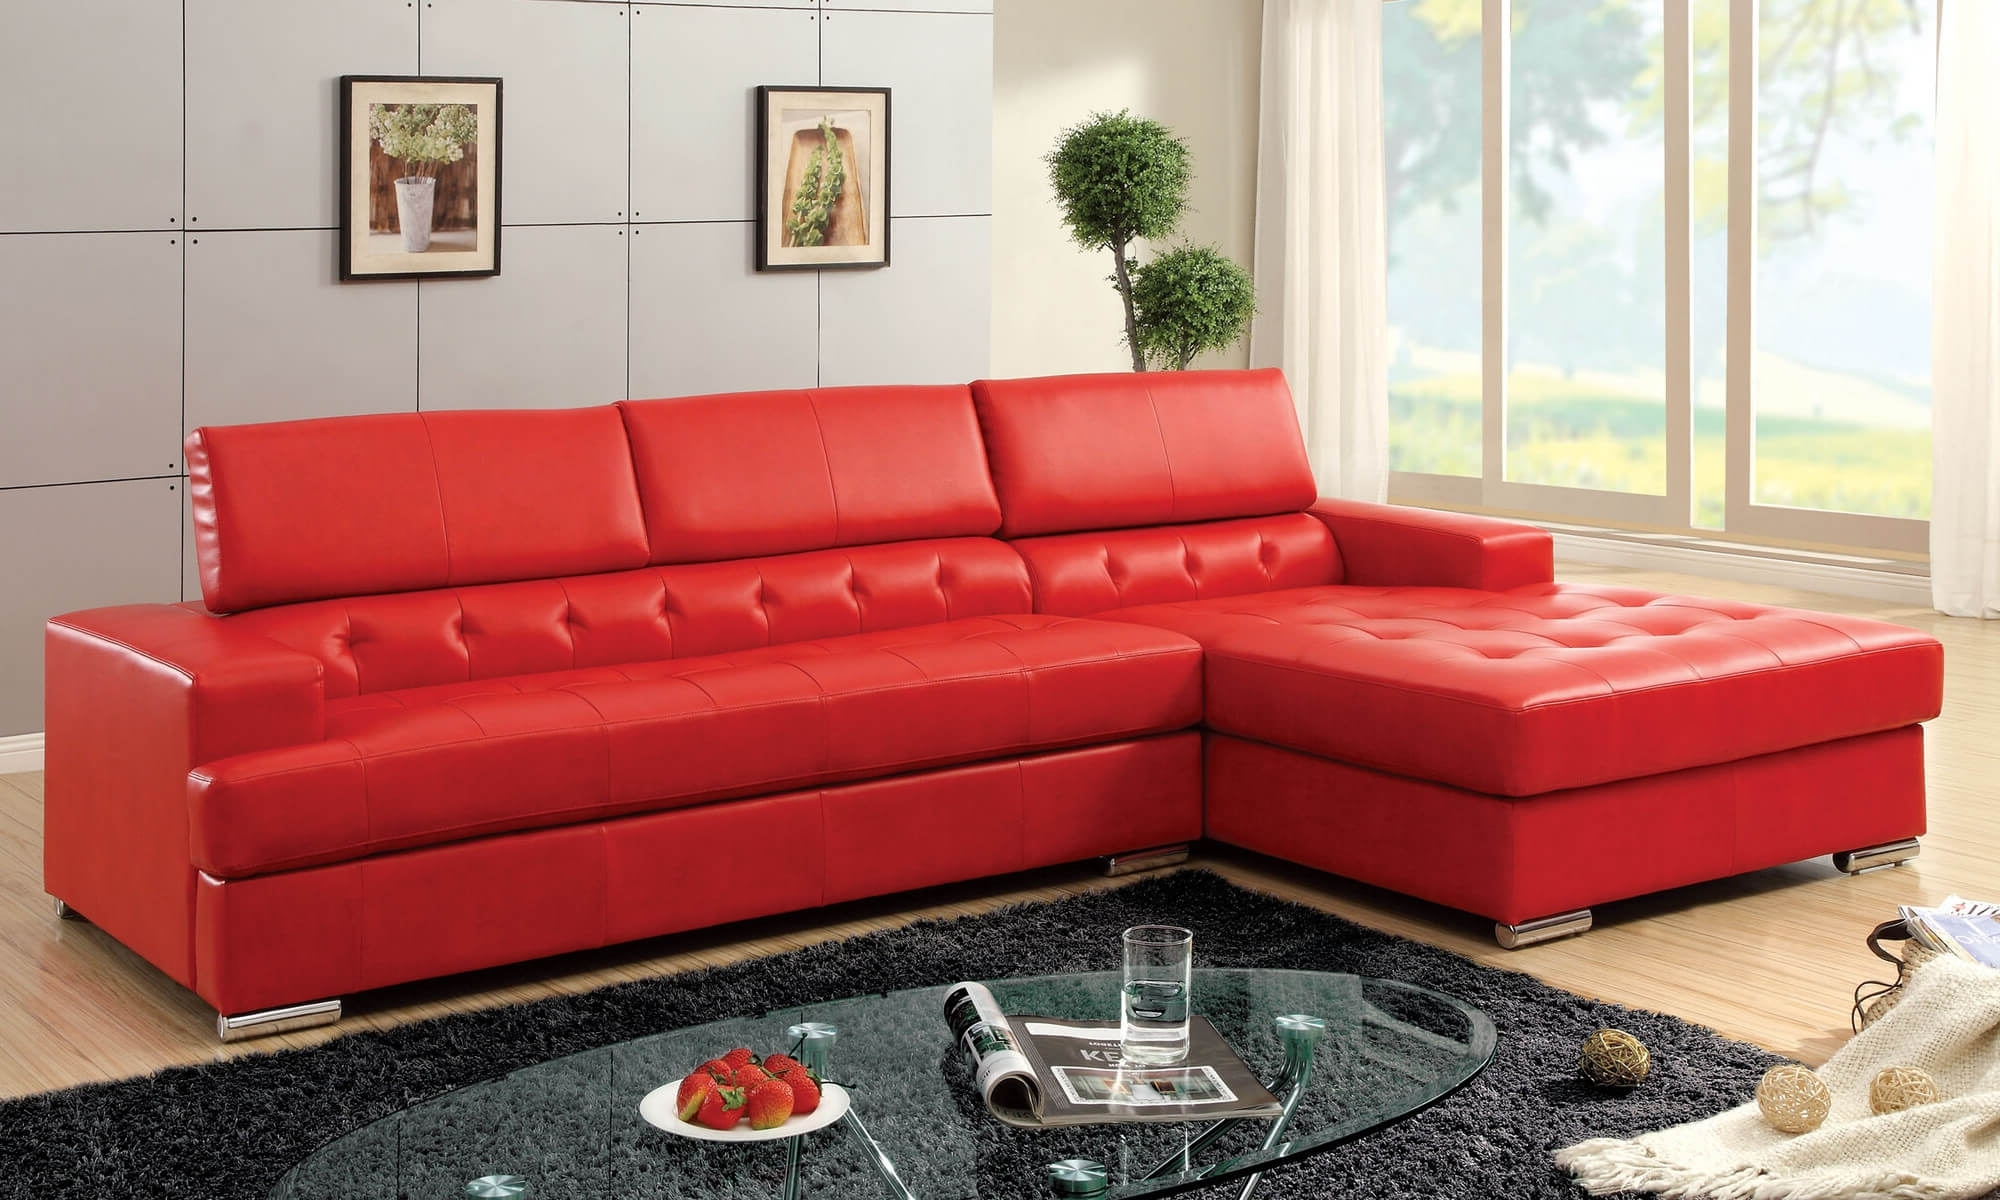 Most Recent 18 Stylish Modern Red Sectional Sofas For Red Leather Couches For Living Room (View 13 of 20)